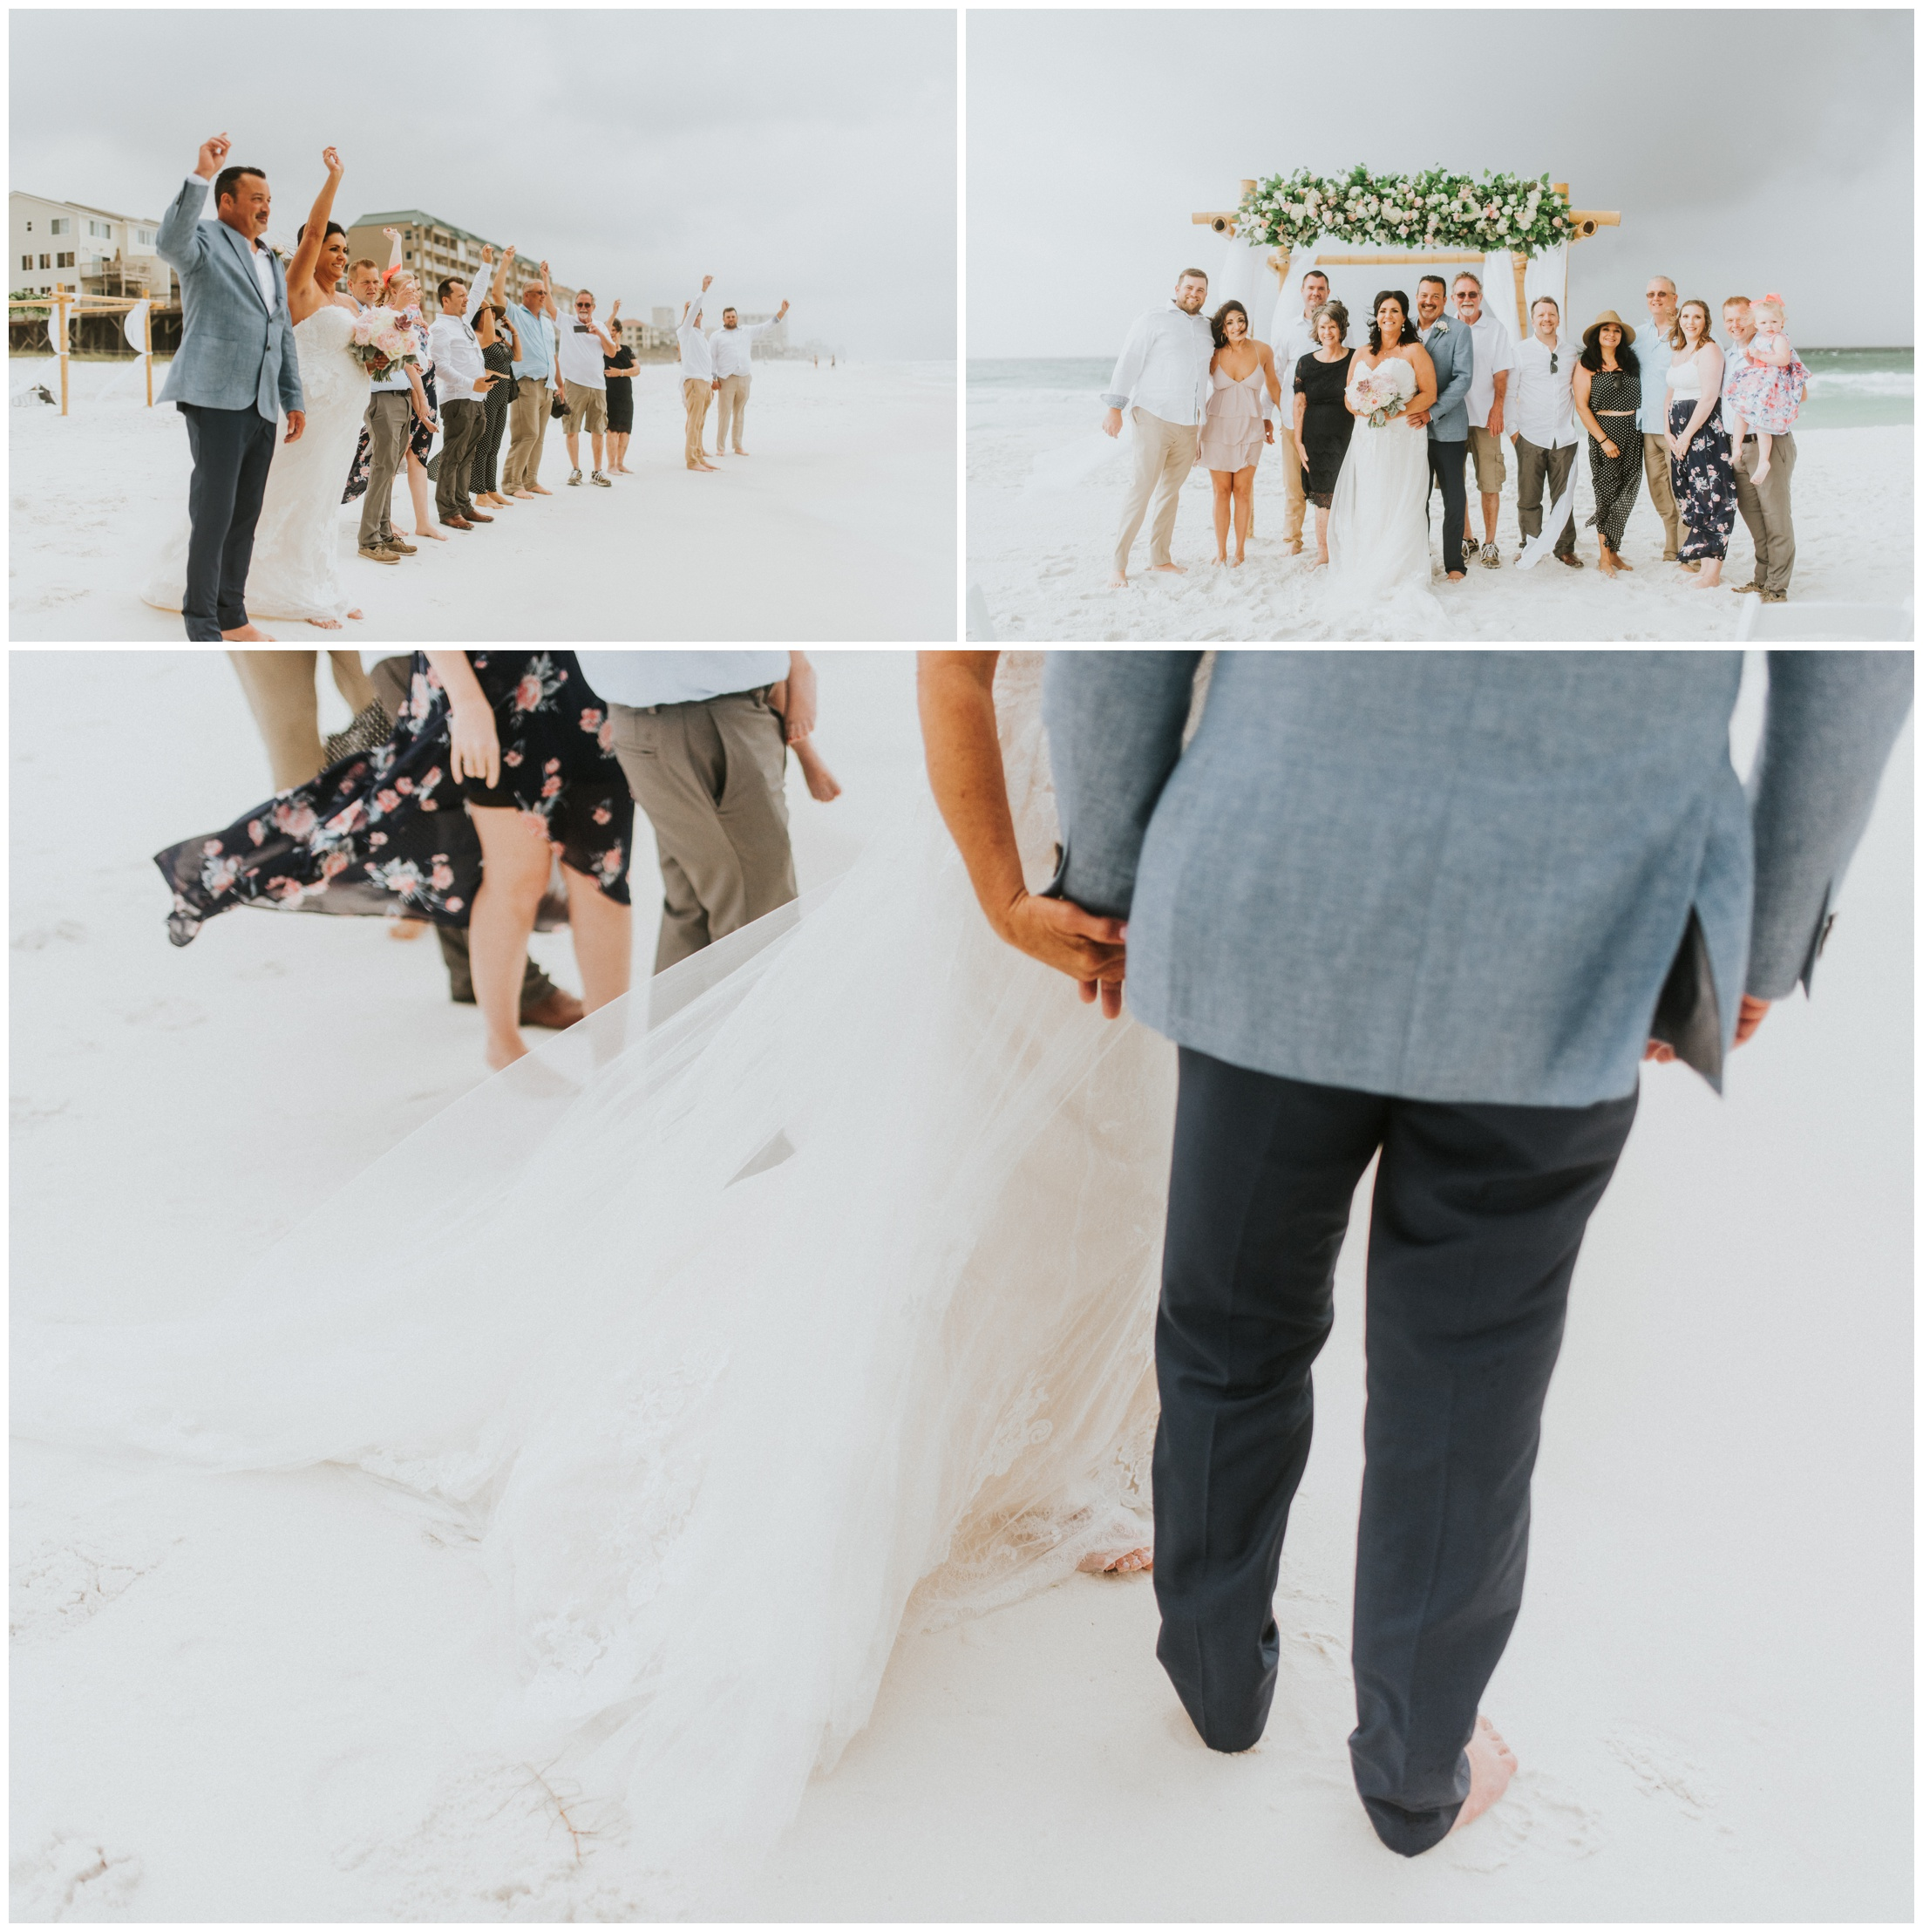 30a-Wedding-Photographer-Love-Mary-Beth-Photography